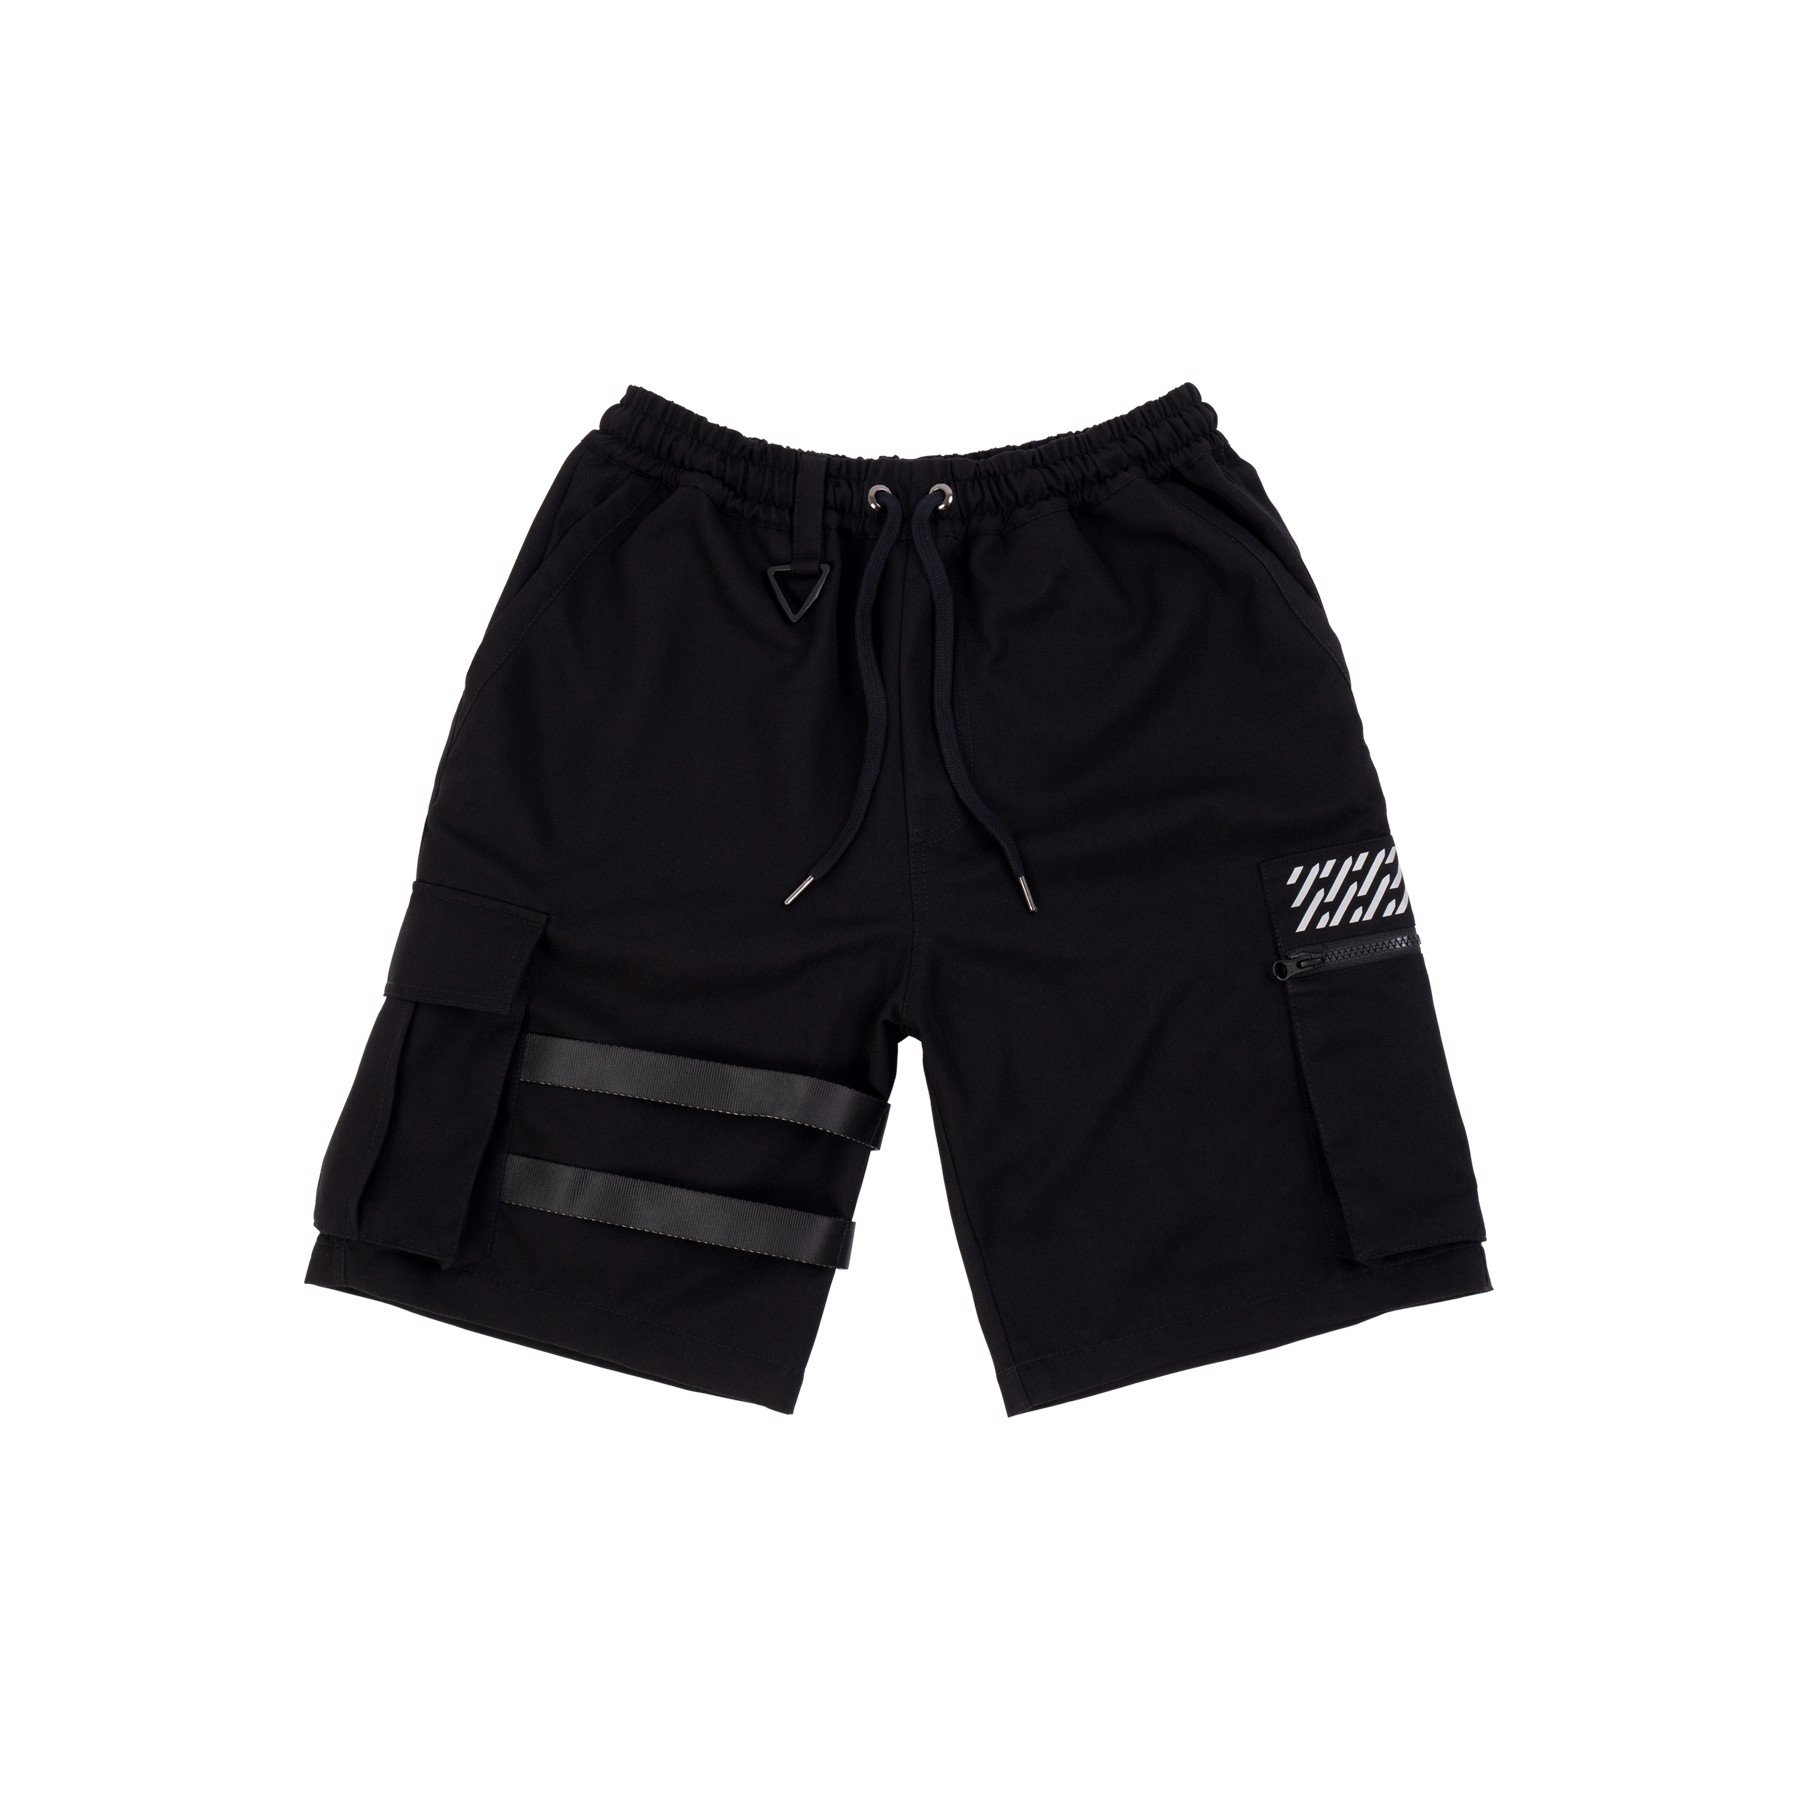 Primitive UJ shorts